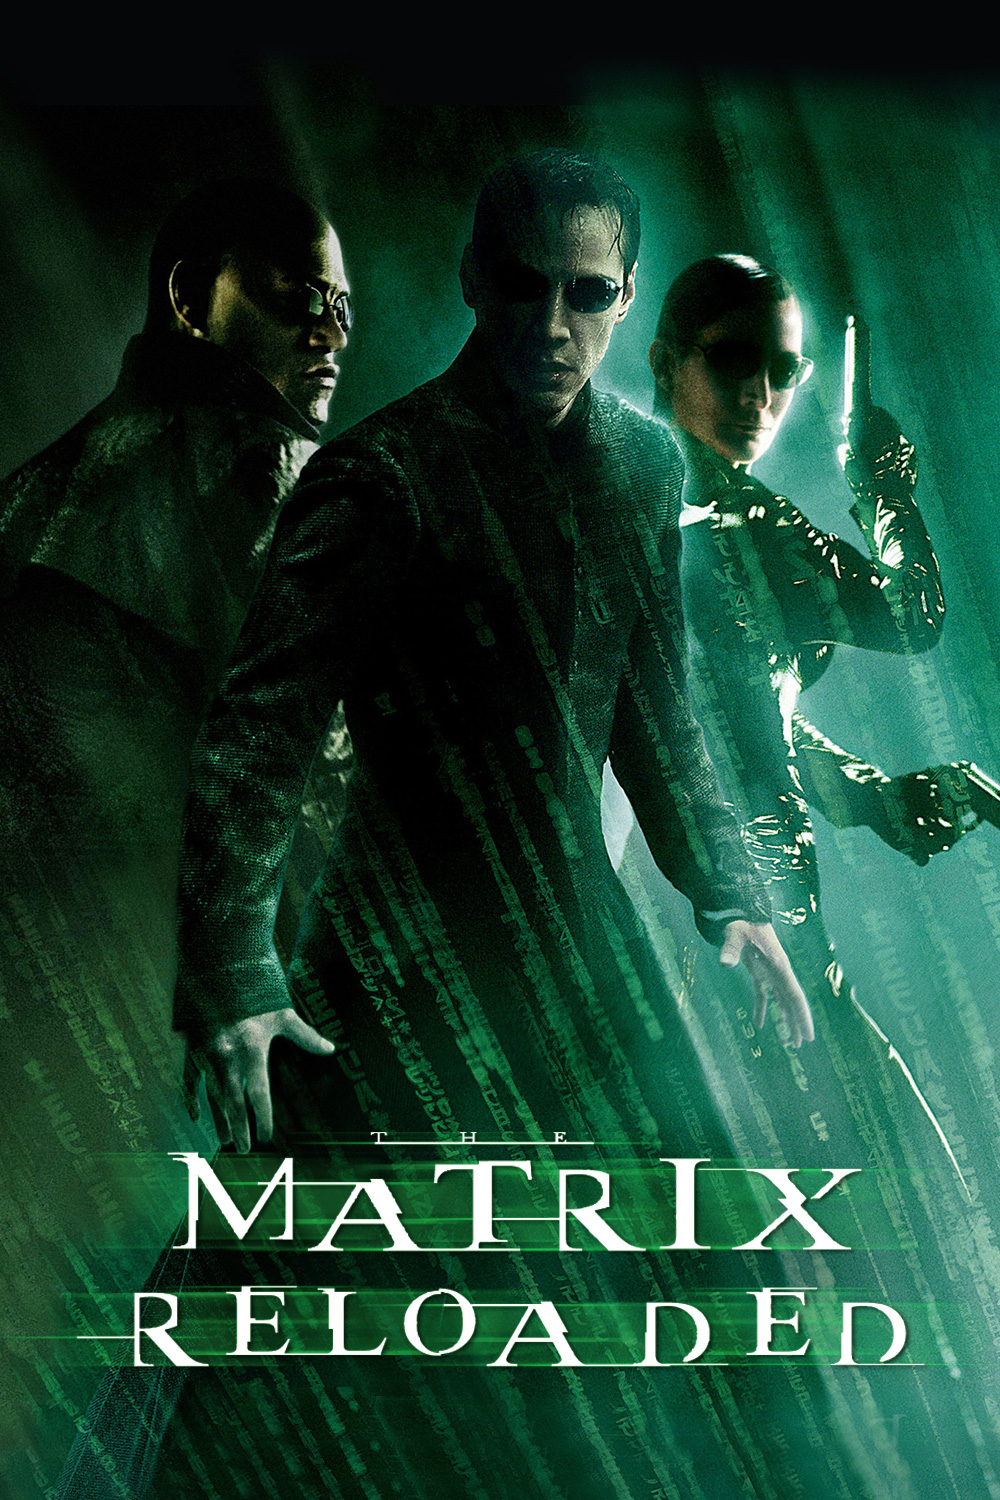 Image Result For Second Movie Review